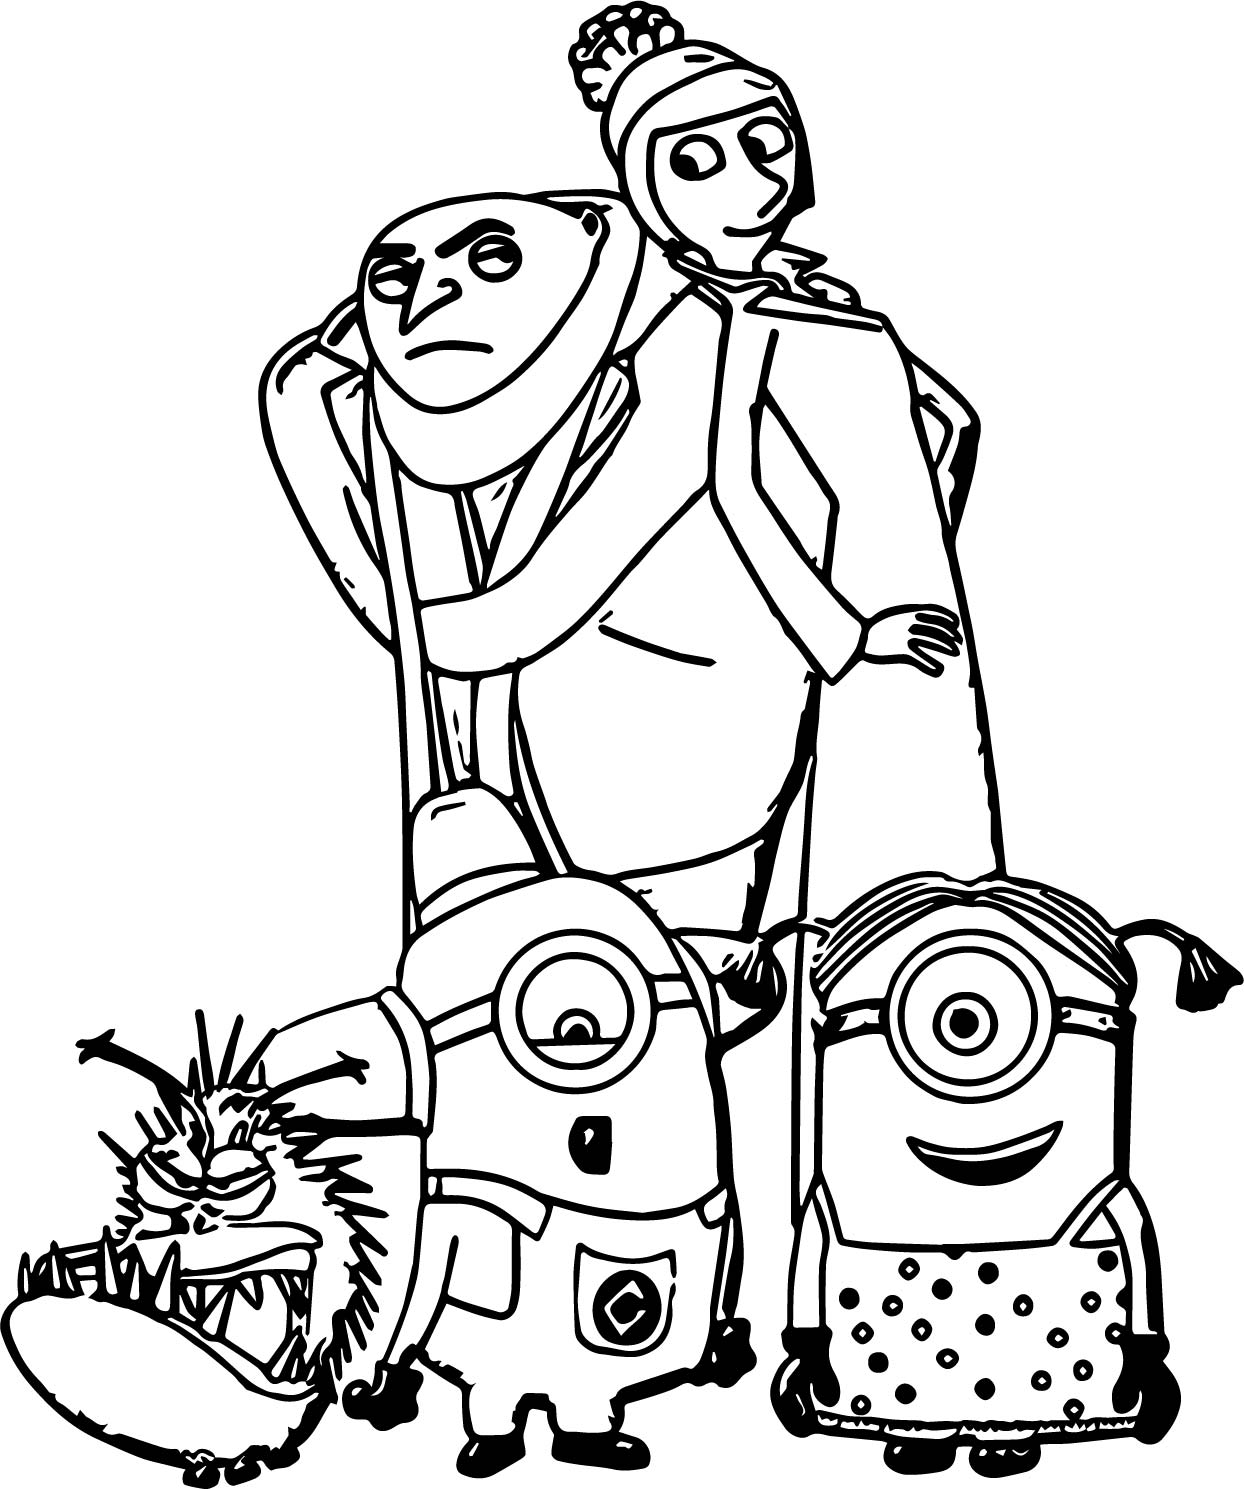 1244x1489 Minion Cartoon Caricatures Ws Coloring Page Wecoloringpage